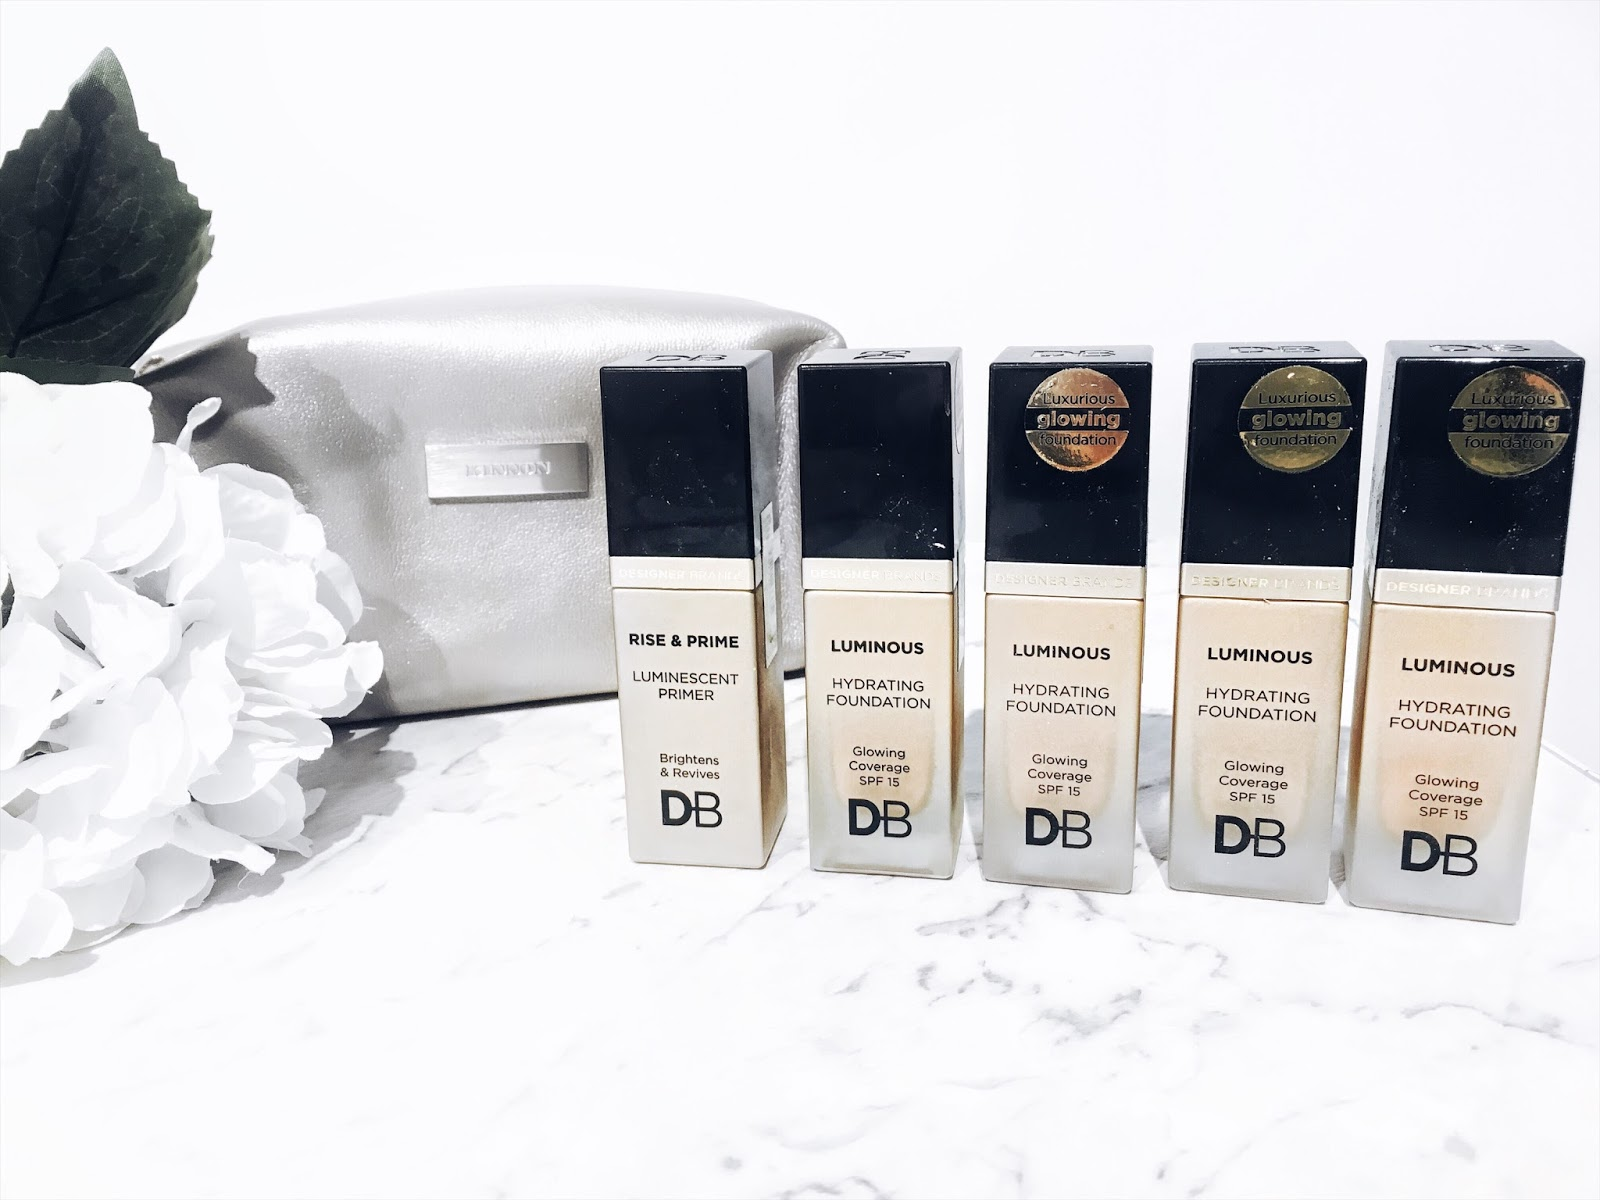 designer brands have released their brand new luminous hydrating foundation and their rise prime luminescent primer - Db Designer Brands